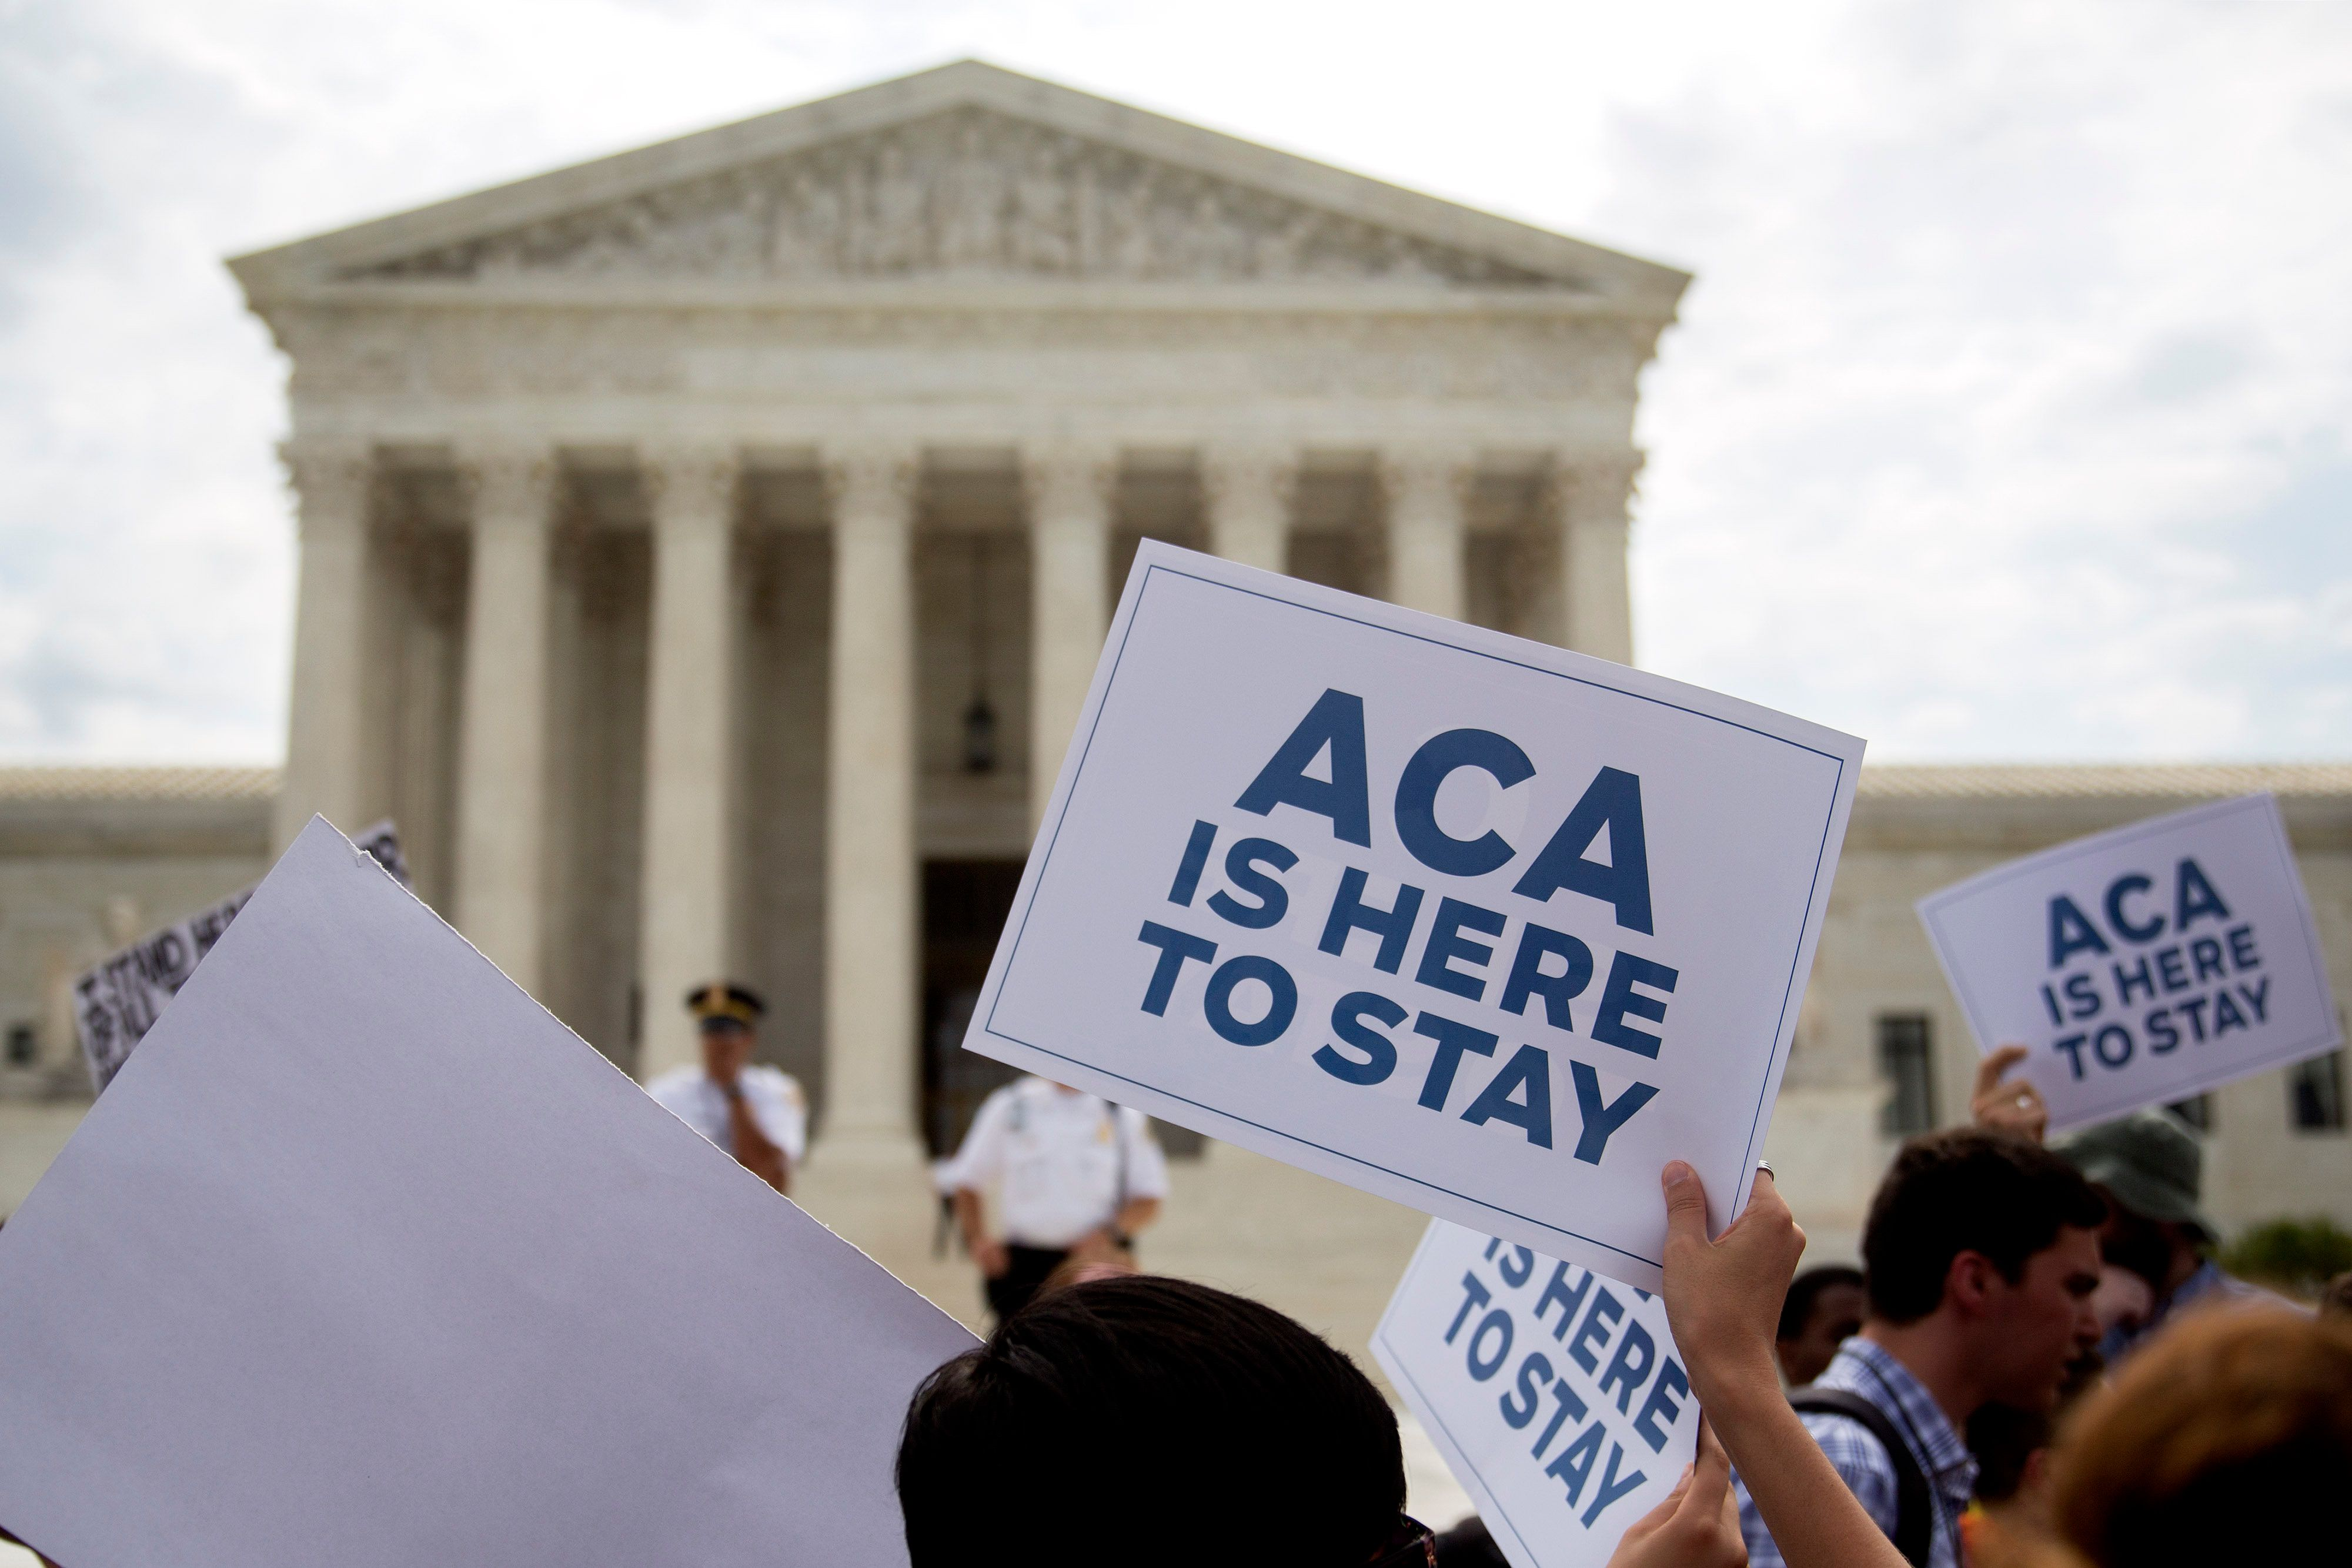 Demonstrators in support of U.S. President Barack Obama's health-care law, the Affordable Care Act (ACA), hold up 'ACA is Here to Stay' signs after the U.S. Supreme Court ruled 6-3 to save Obamacare tax subsidies outside the Supreme Court in Washington, D.C., U.S., on Thursday, June 25, 2015. The U.S. Supreme Court upheld the nationwide tax subsidies that are a core component of President Barack Obama's health-care law rejecting a challenge that had threatened to gut the measure and undercut his legacy. Photographer: Andrew Harrer/Bloomberg via Getty Images